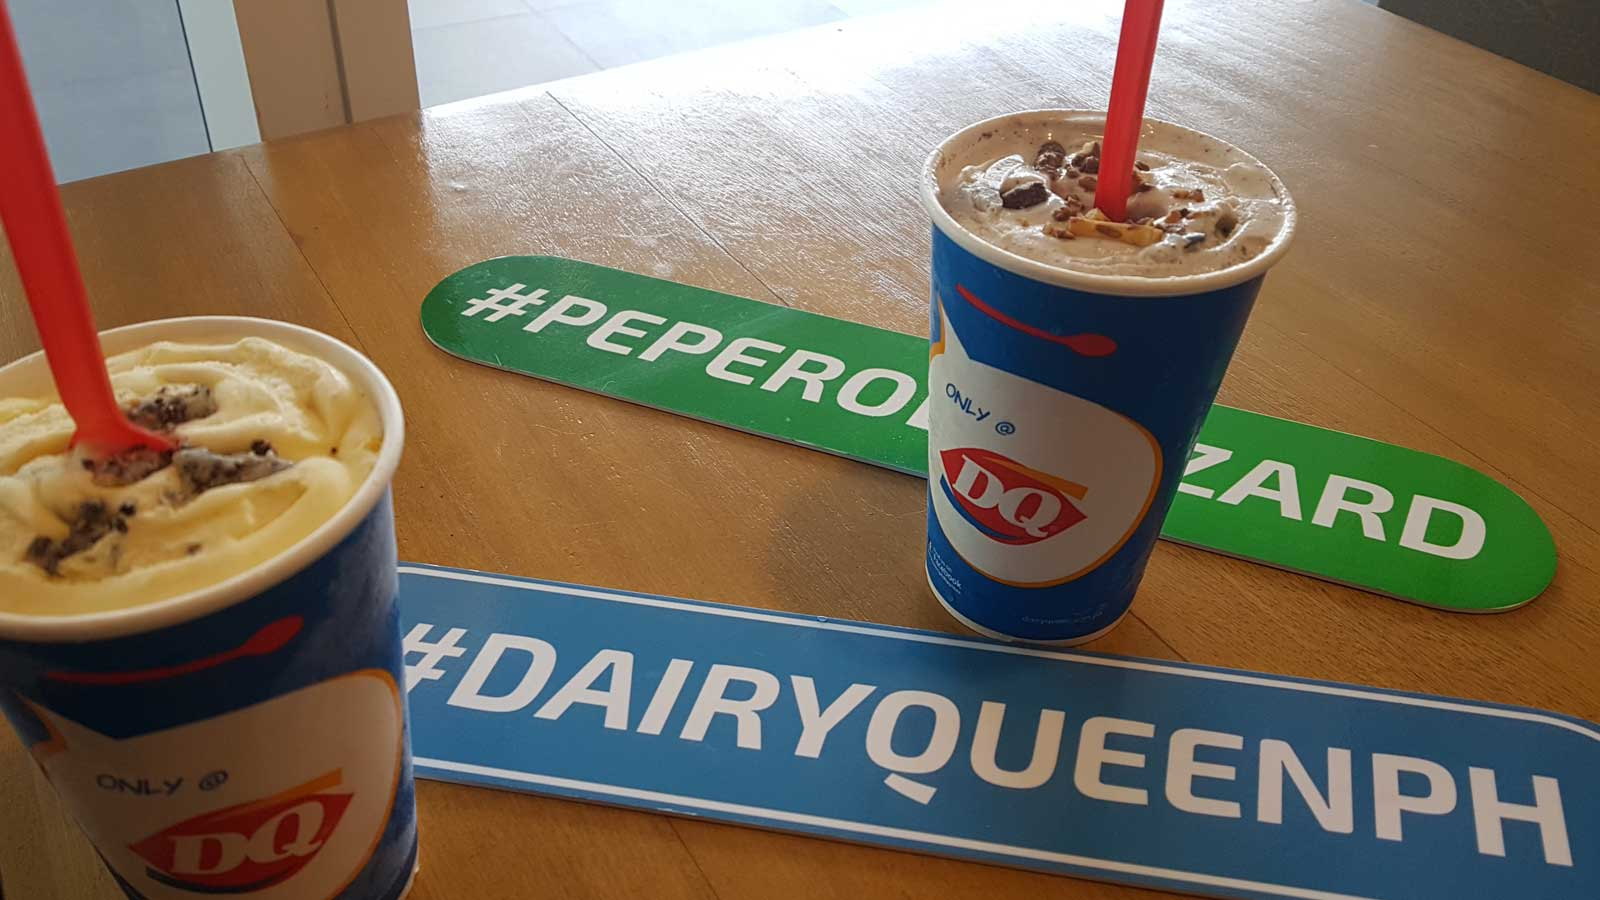 Pepero Blizzard: Dairy Queen's July Blizzard of the Month